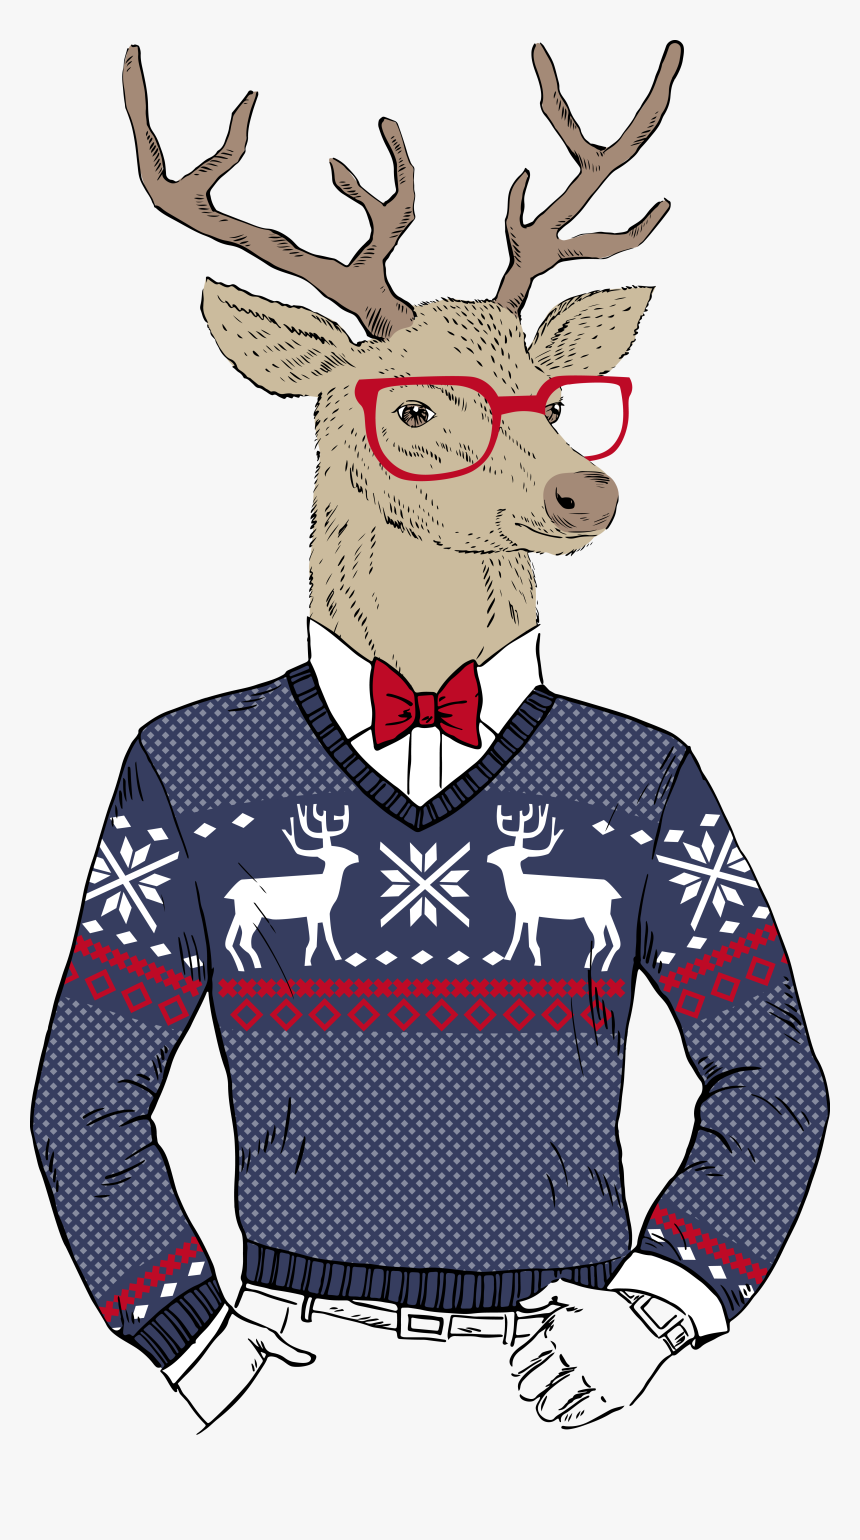 Clip Art Hipster Christmas Santa Claus - Ugly Christmas Sweater Invitations, HD Png Download, Free Download